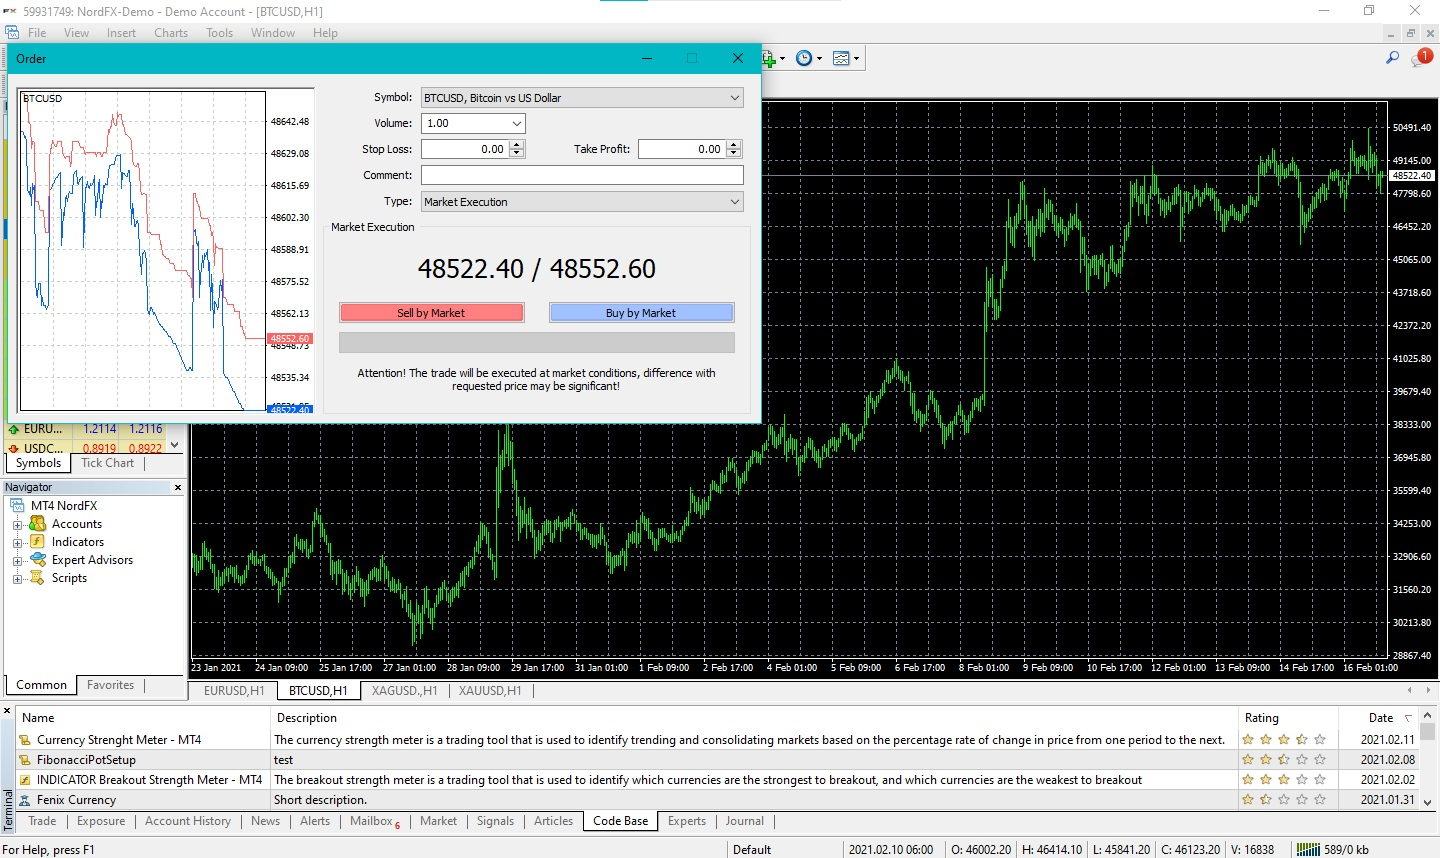 NordFX: How to buy Bitcoin with leverage 3